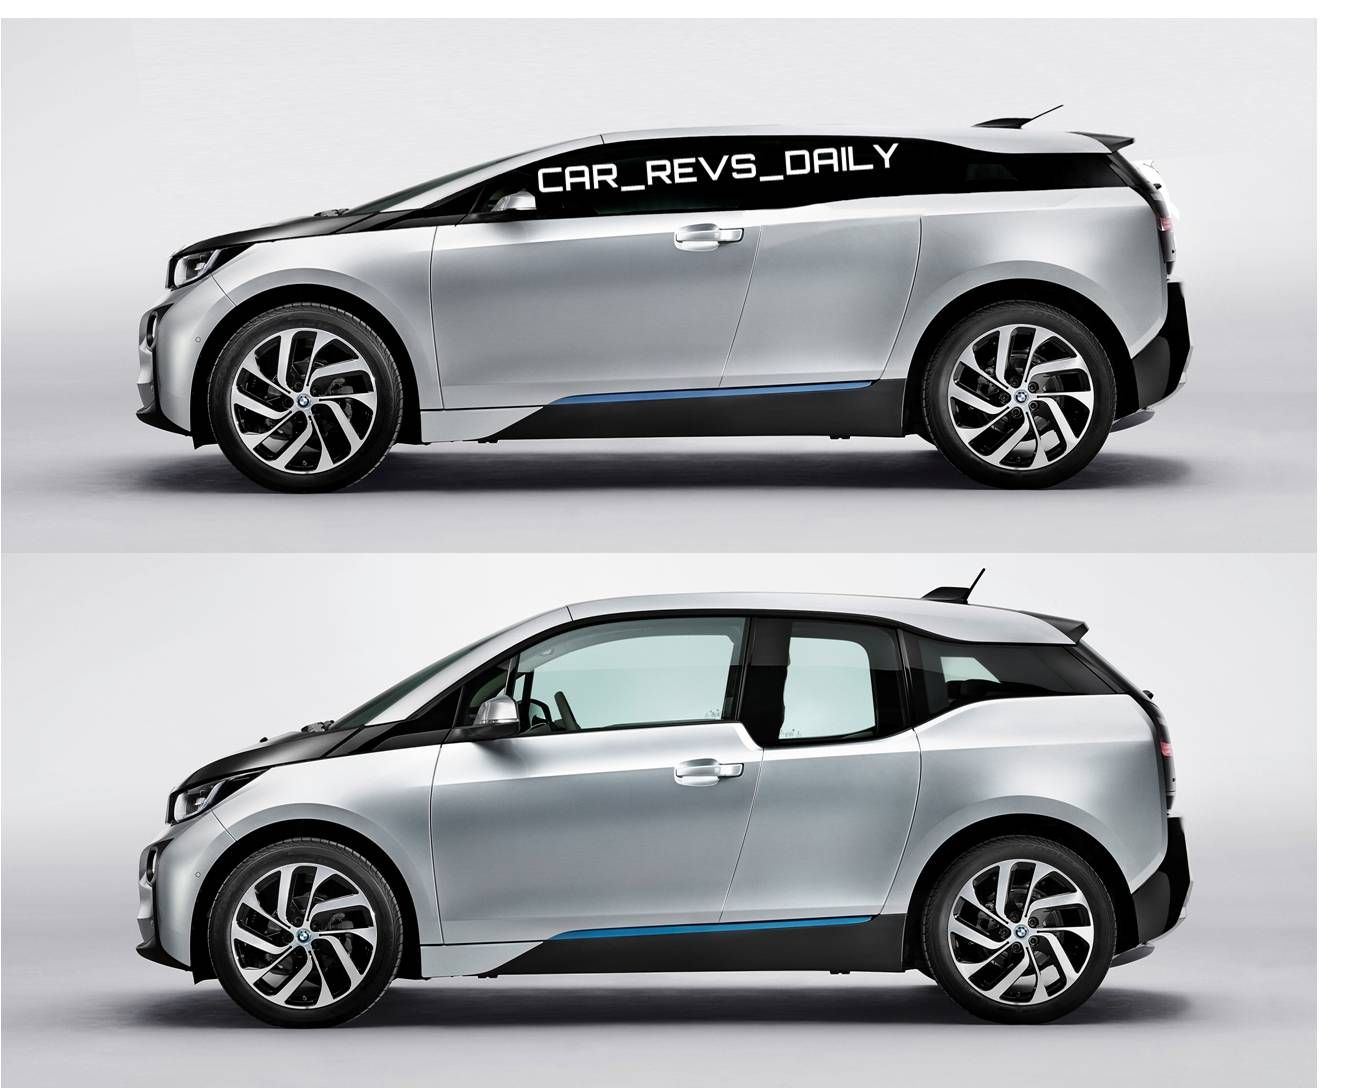 Car Revs Daily.com 2016 BMW i4 Rendering SIDE vs i3 800x638 BMW Debuts Solar Carport and Triples Carbon Fiber Output at Hydro Powered Washin...